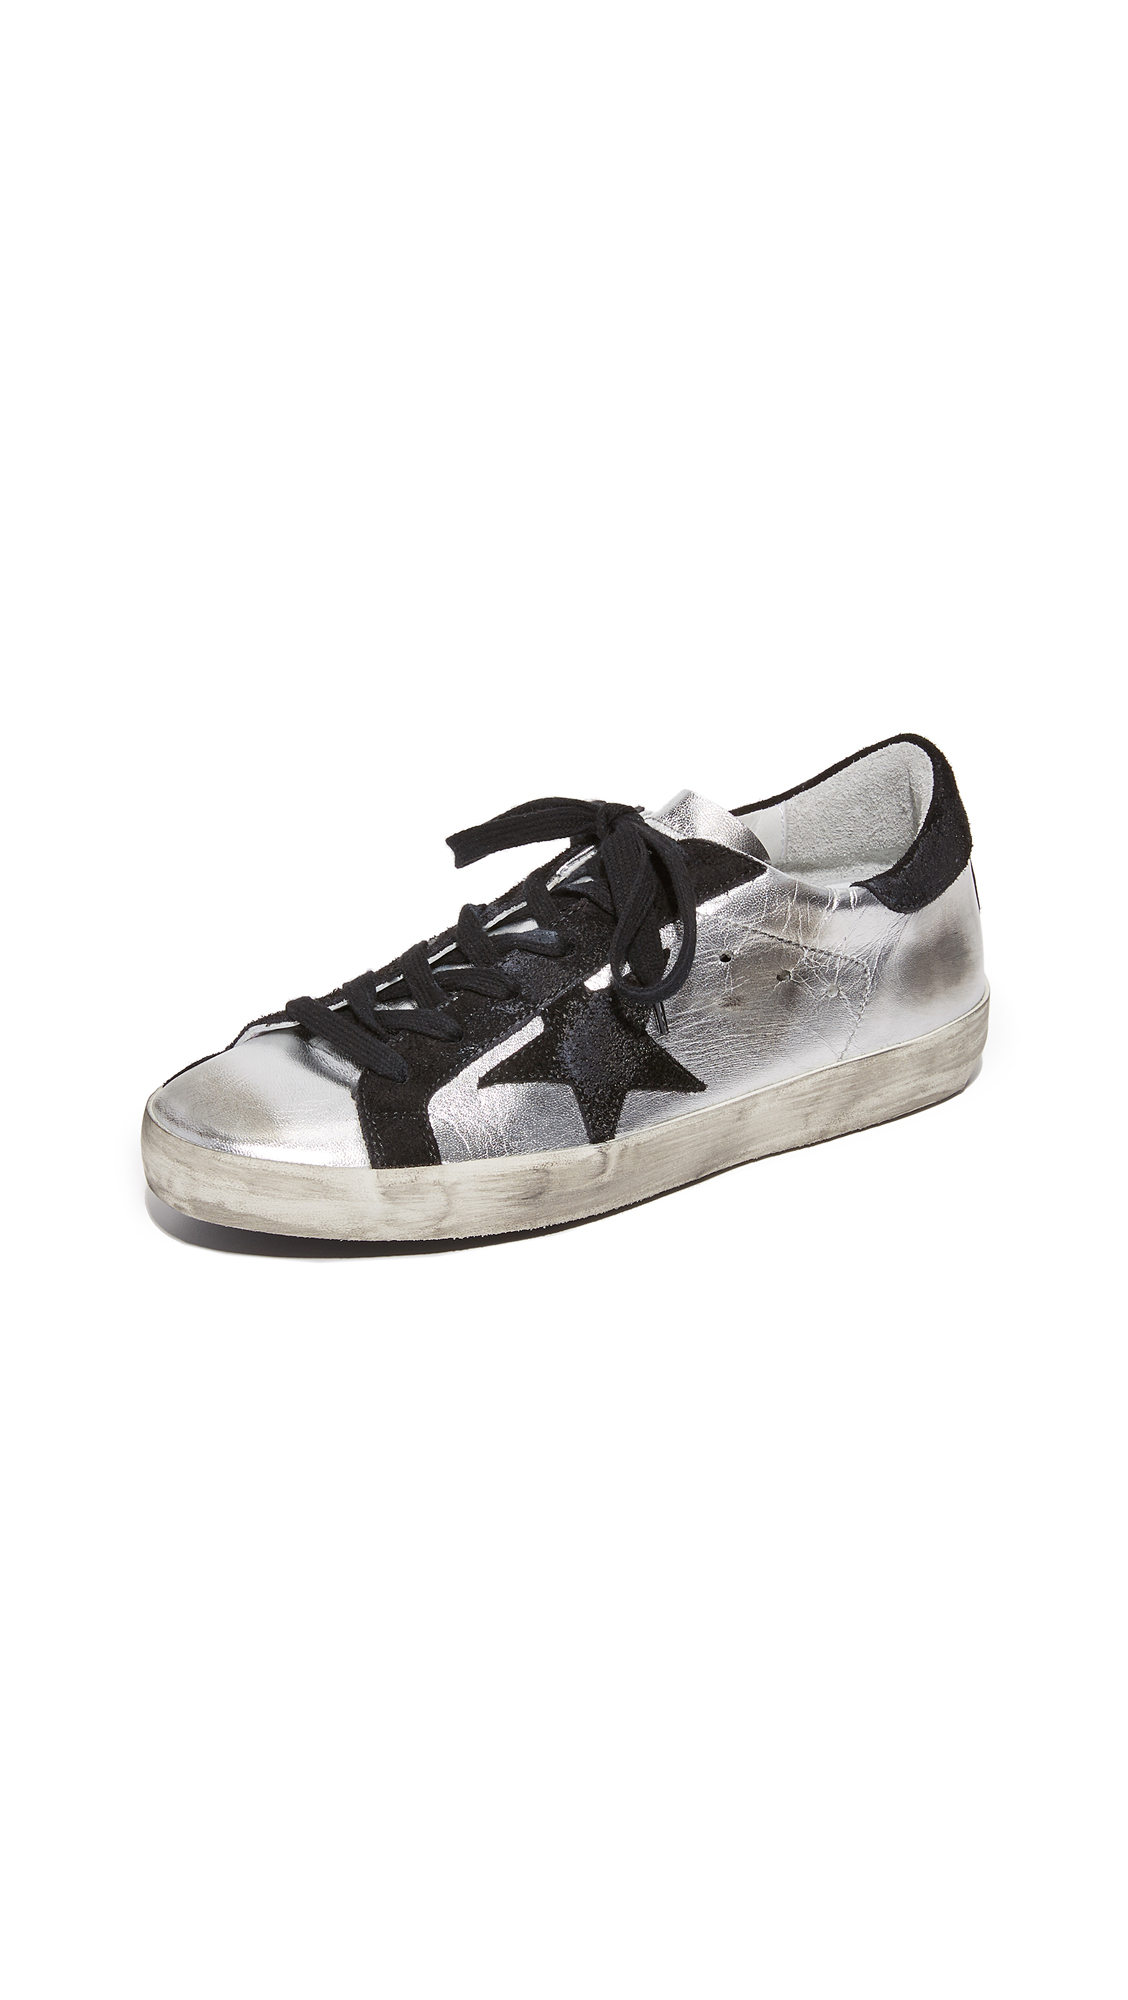 Golden Goose Superstar Sneakers - Silver/Black